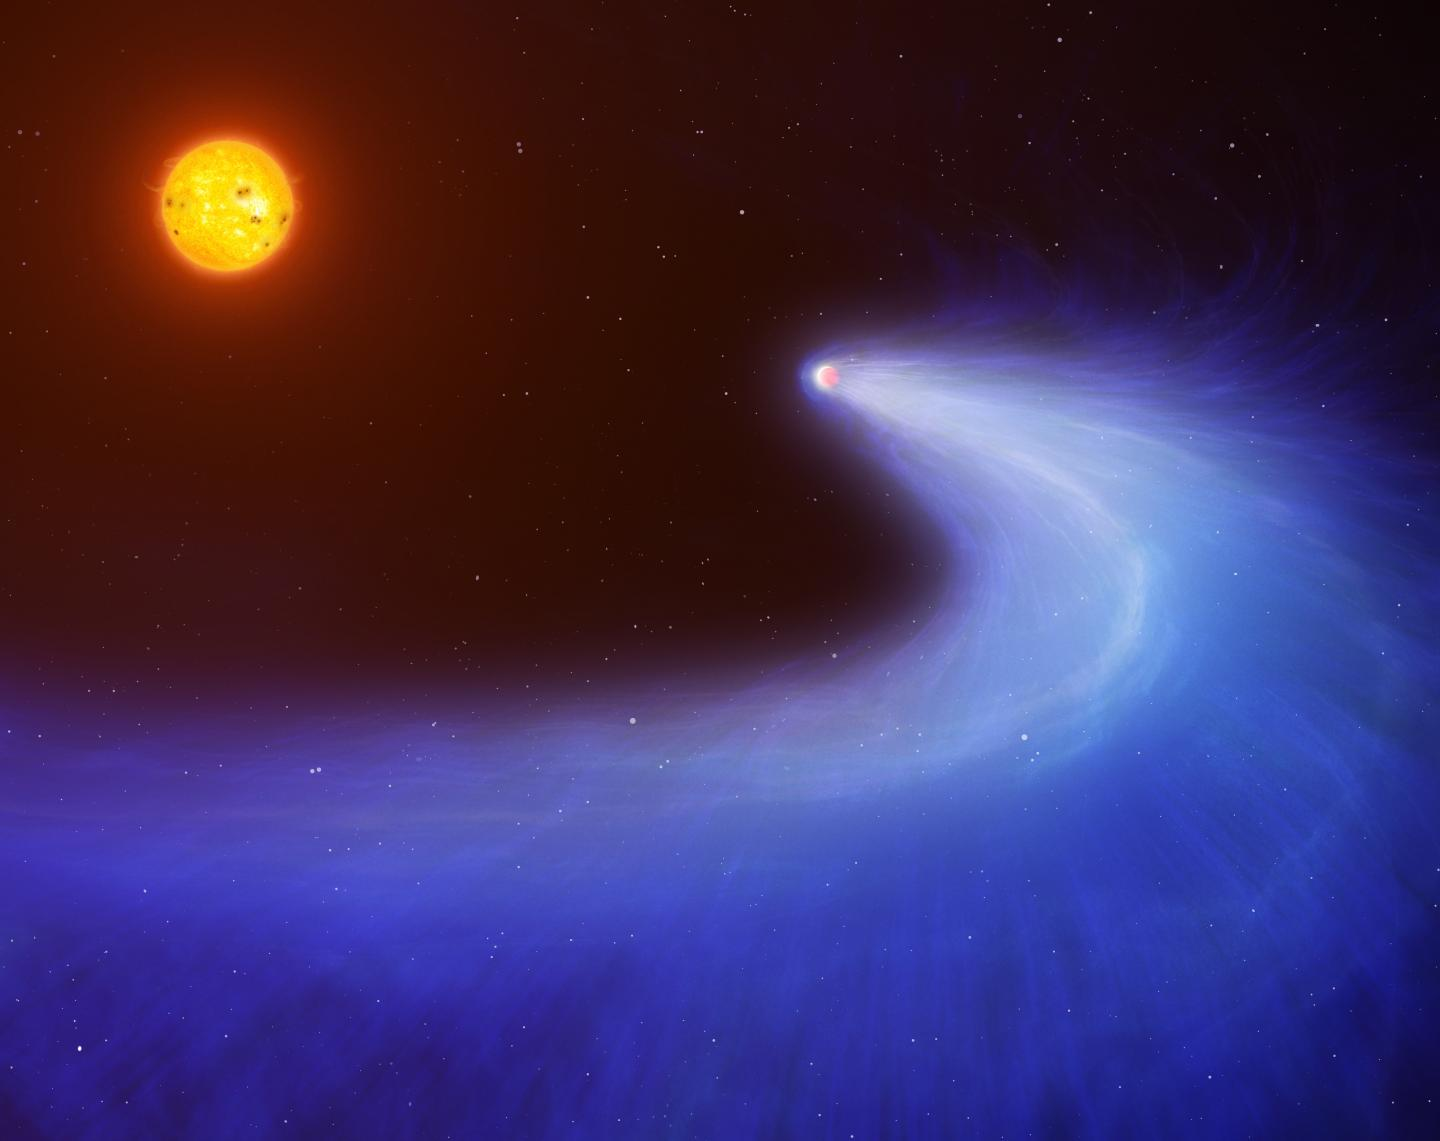 Giant planet with a comet-like tail orbiting its sun